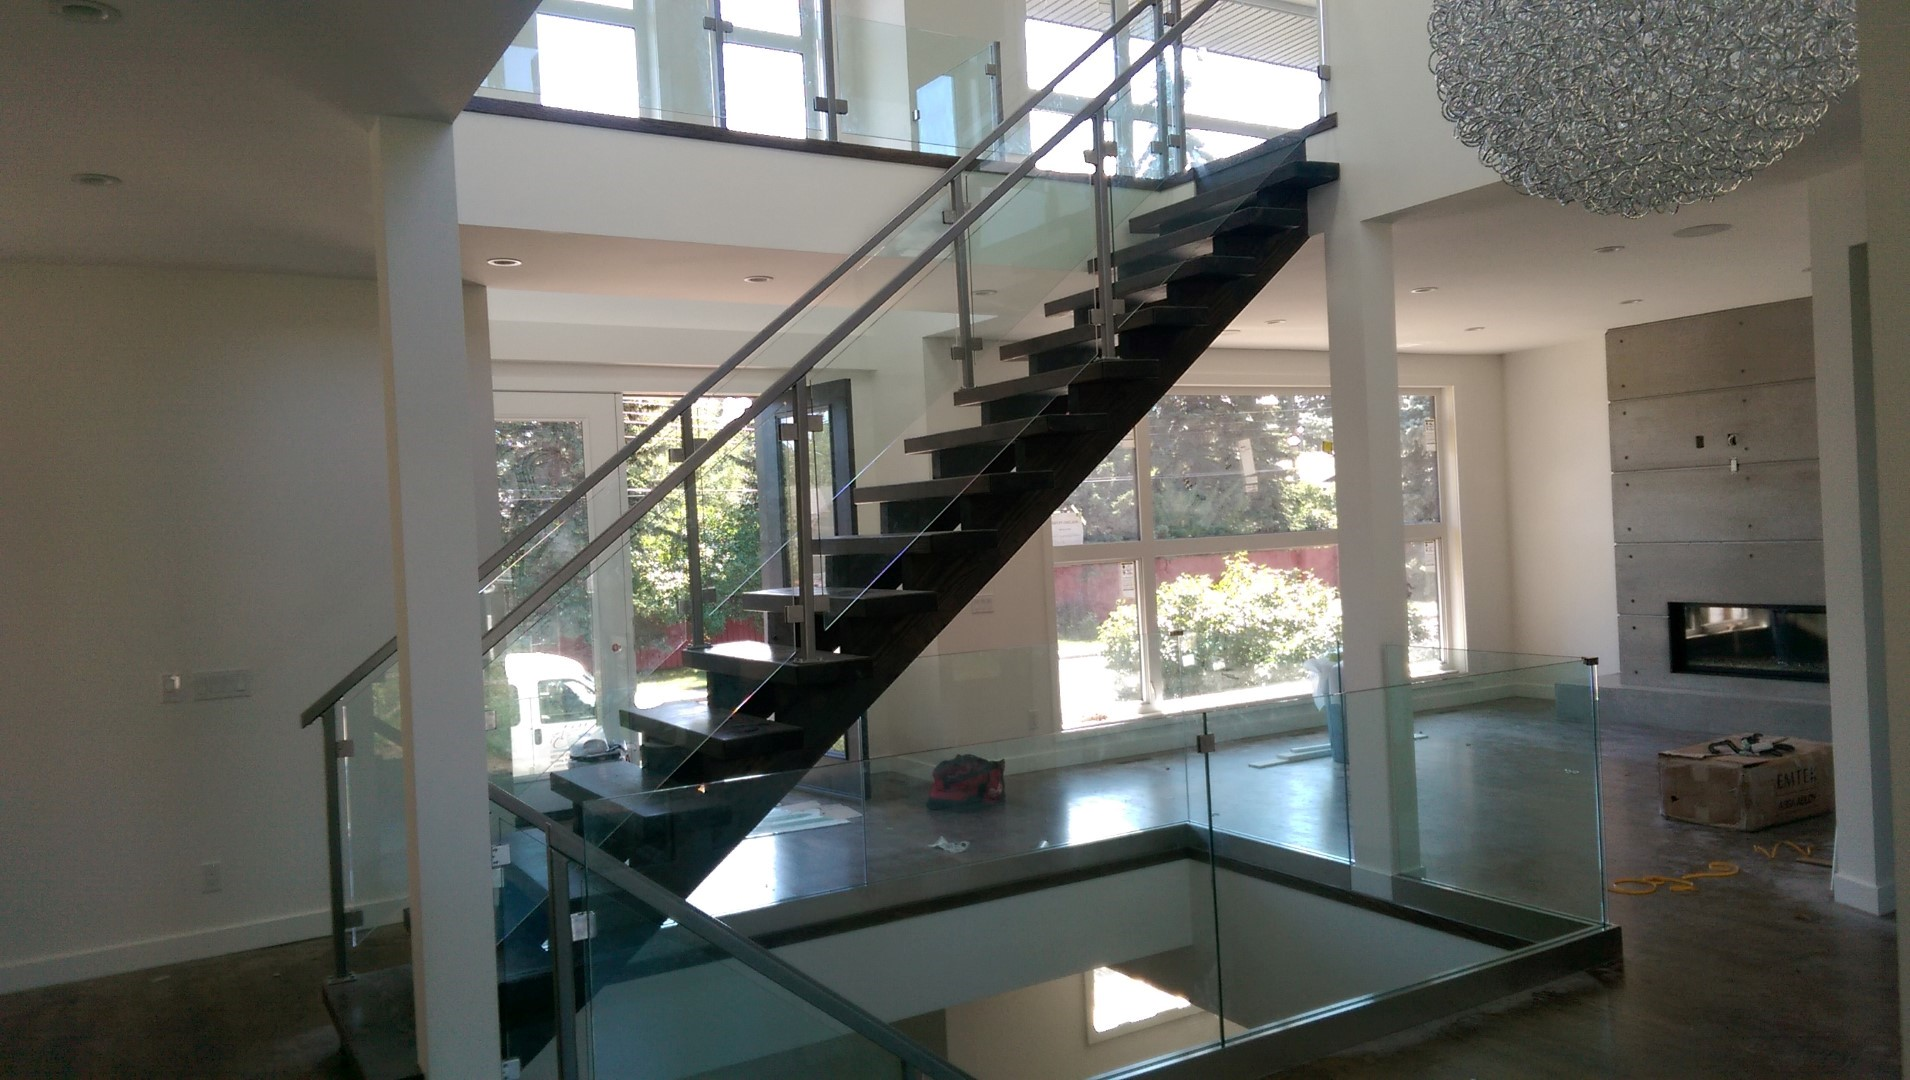 railings systems metal and springfield tech custom railing stair system ma interior